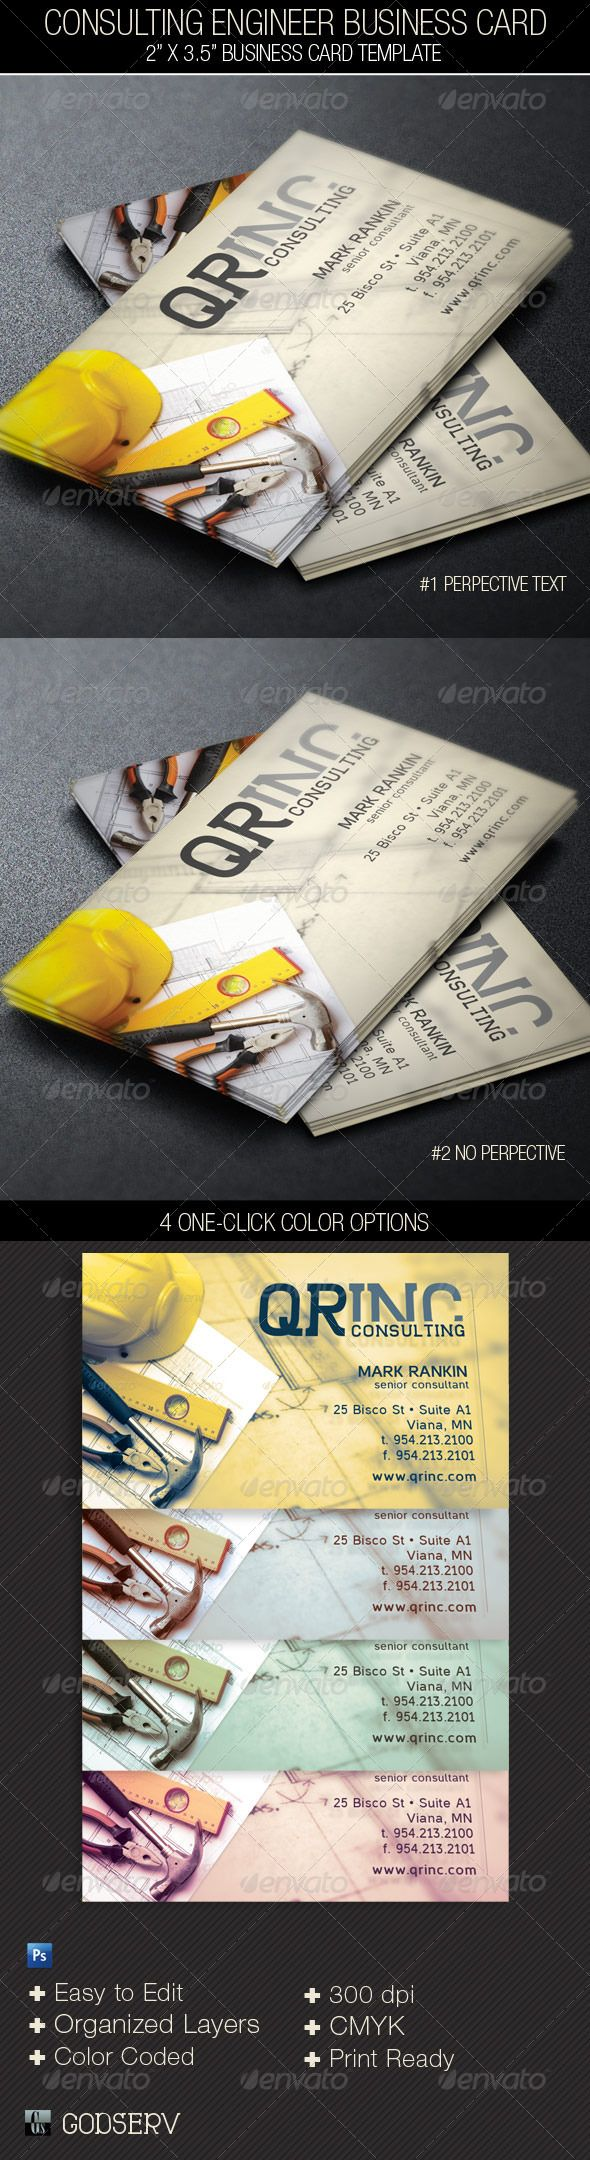 Consulting Engineer Business Card Template PSD. Download here: http://graphicriver.net/item/consulting-engineer-business-card-template/4596529?s_rank=124&ref=yinkira